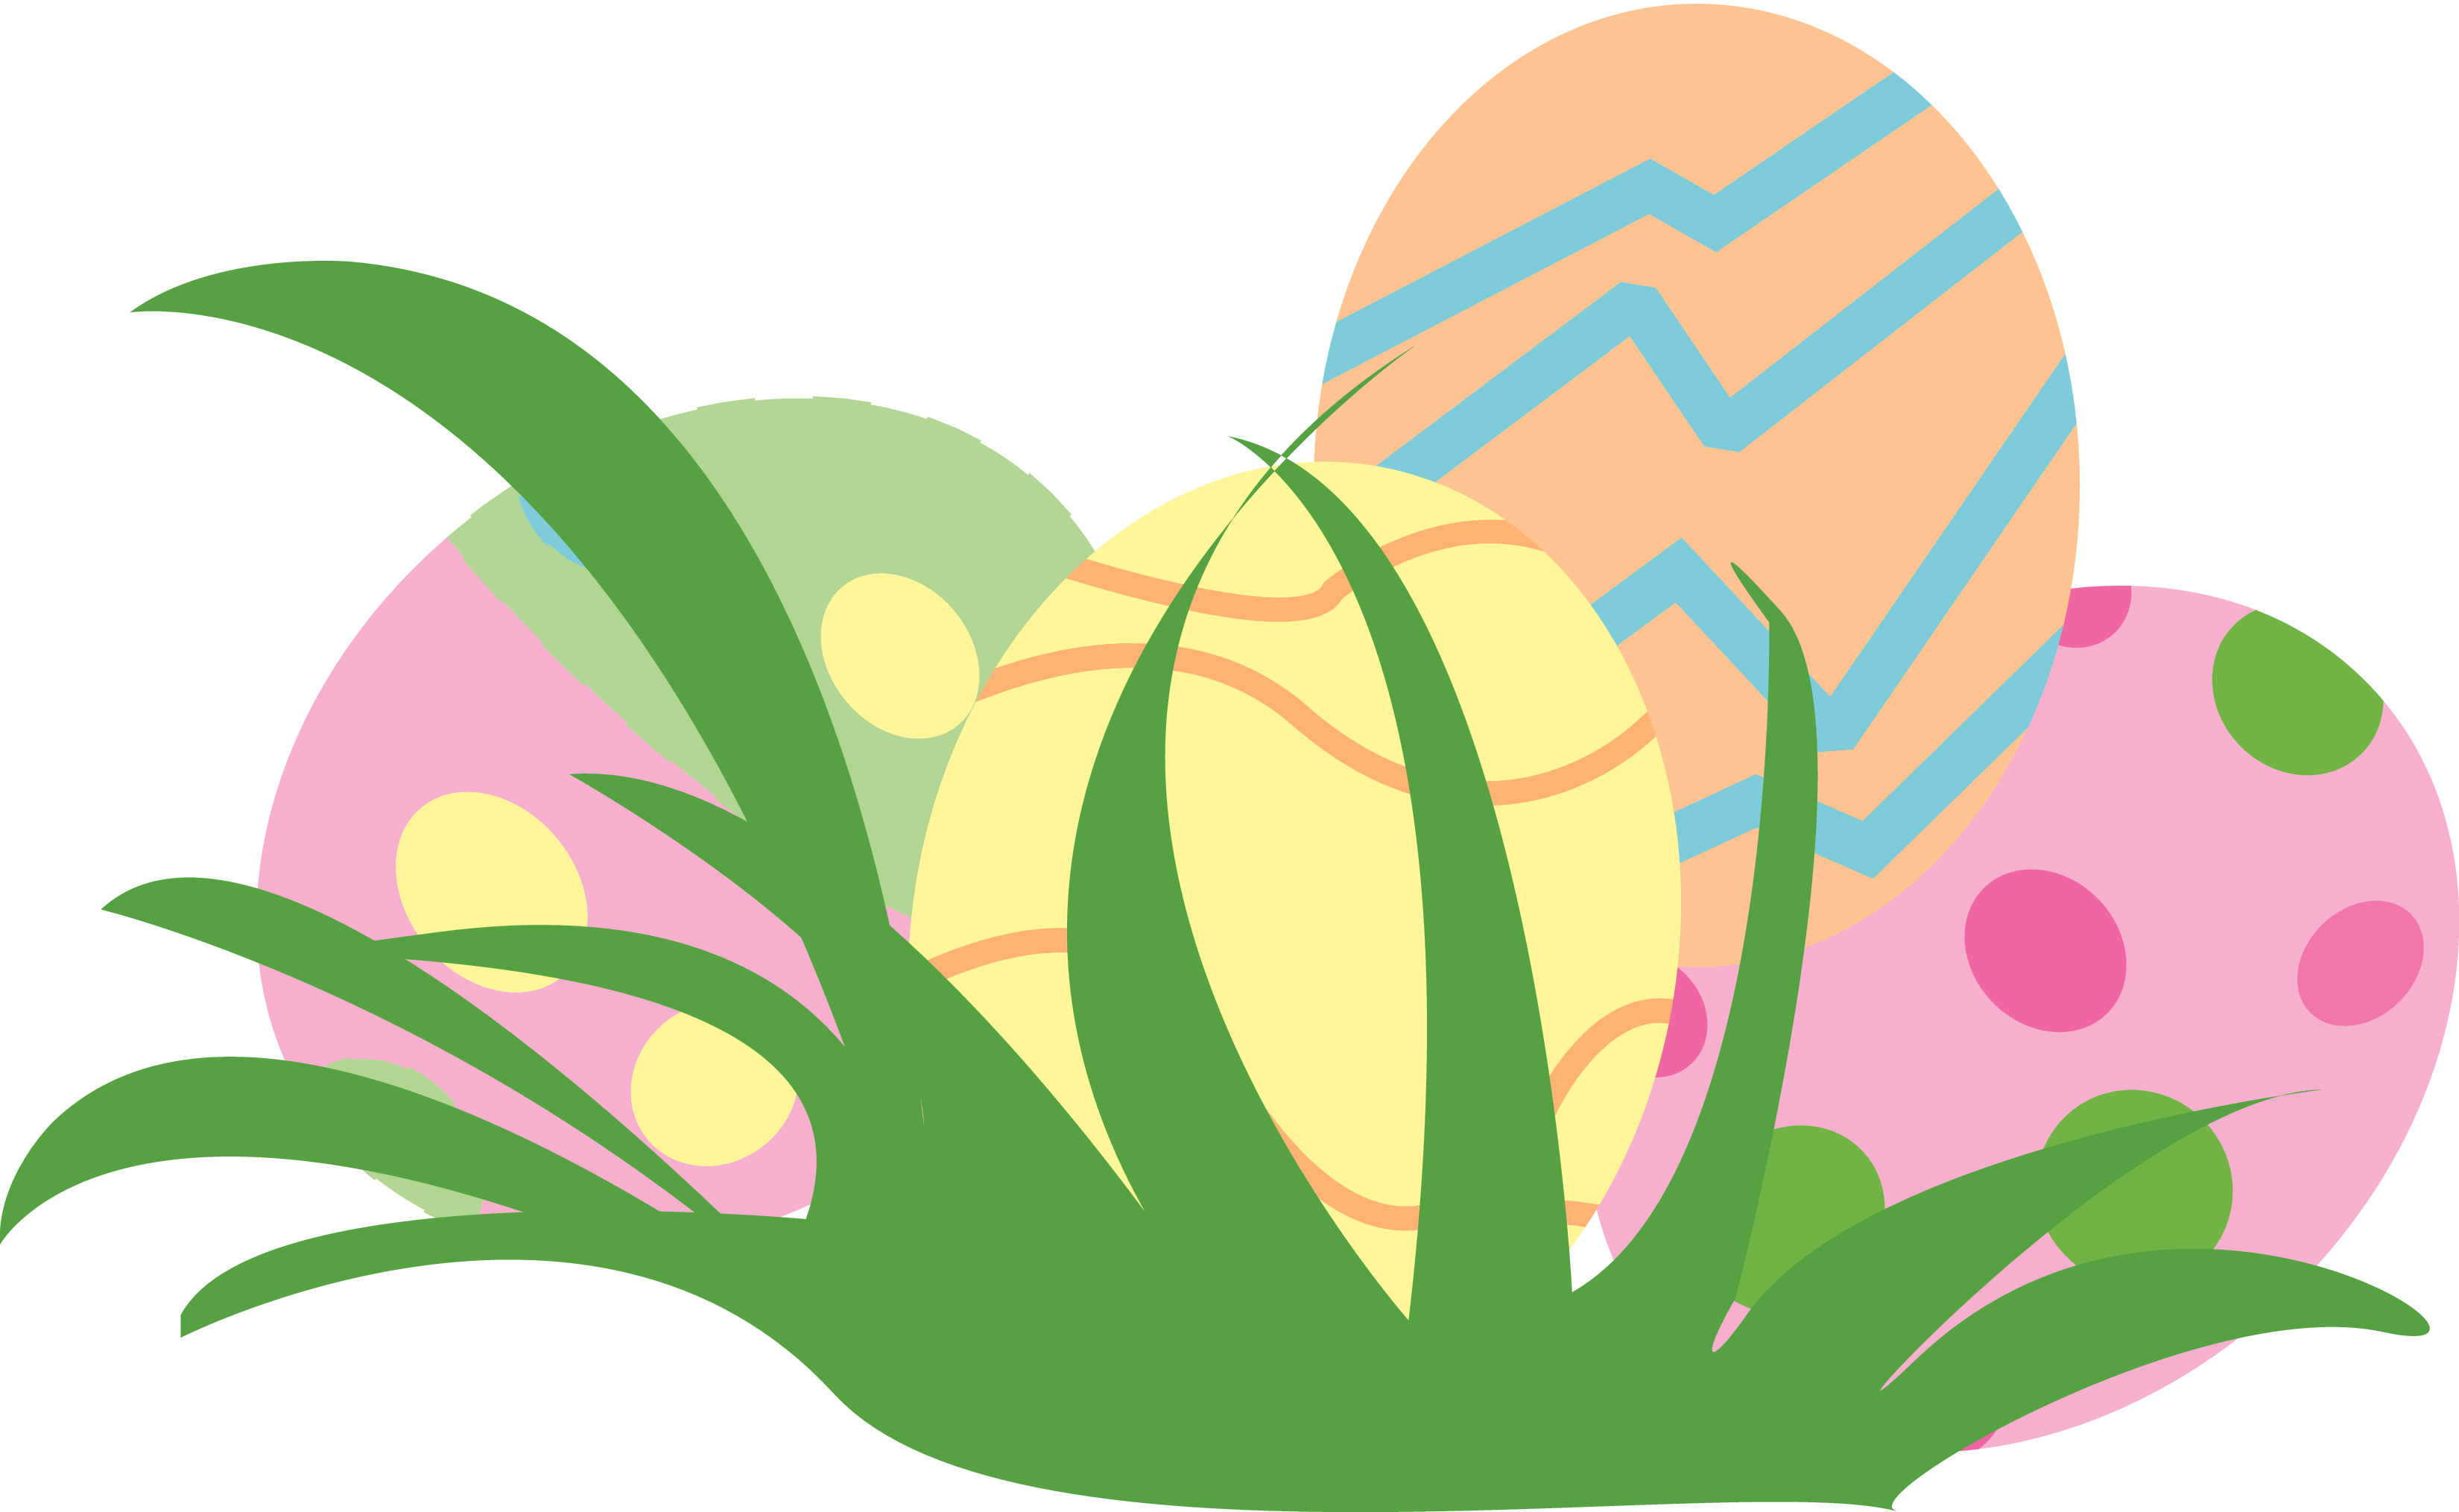 clipart easter free - photo #4